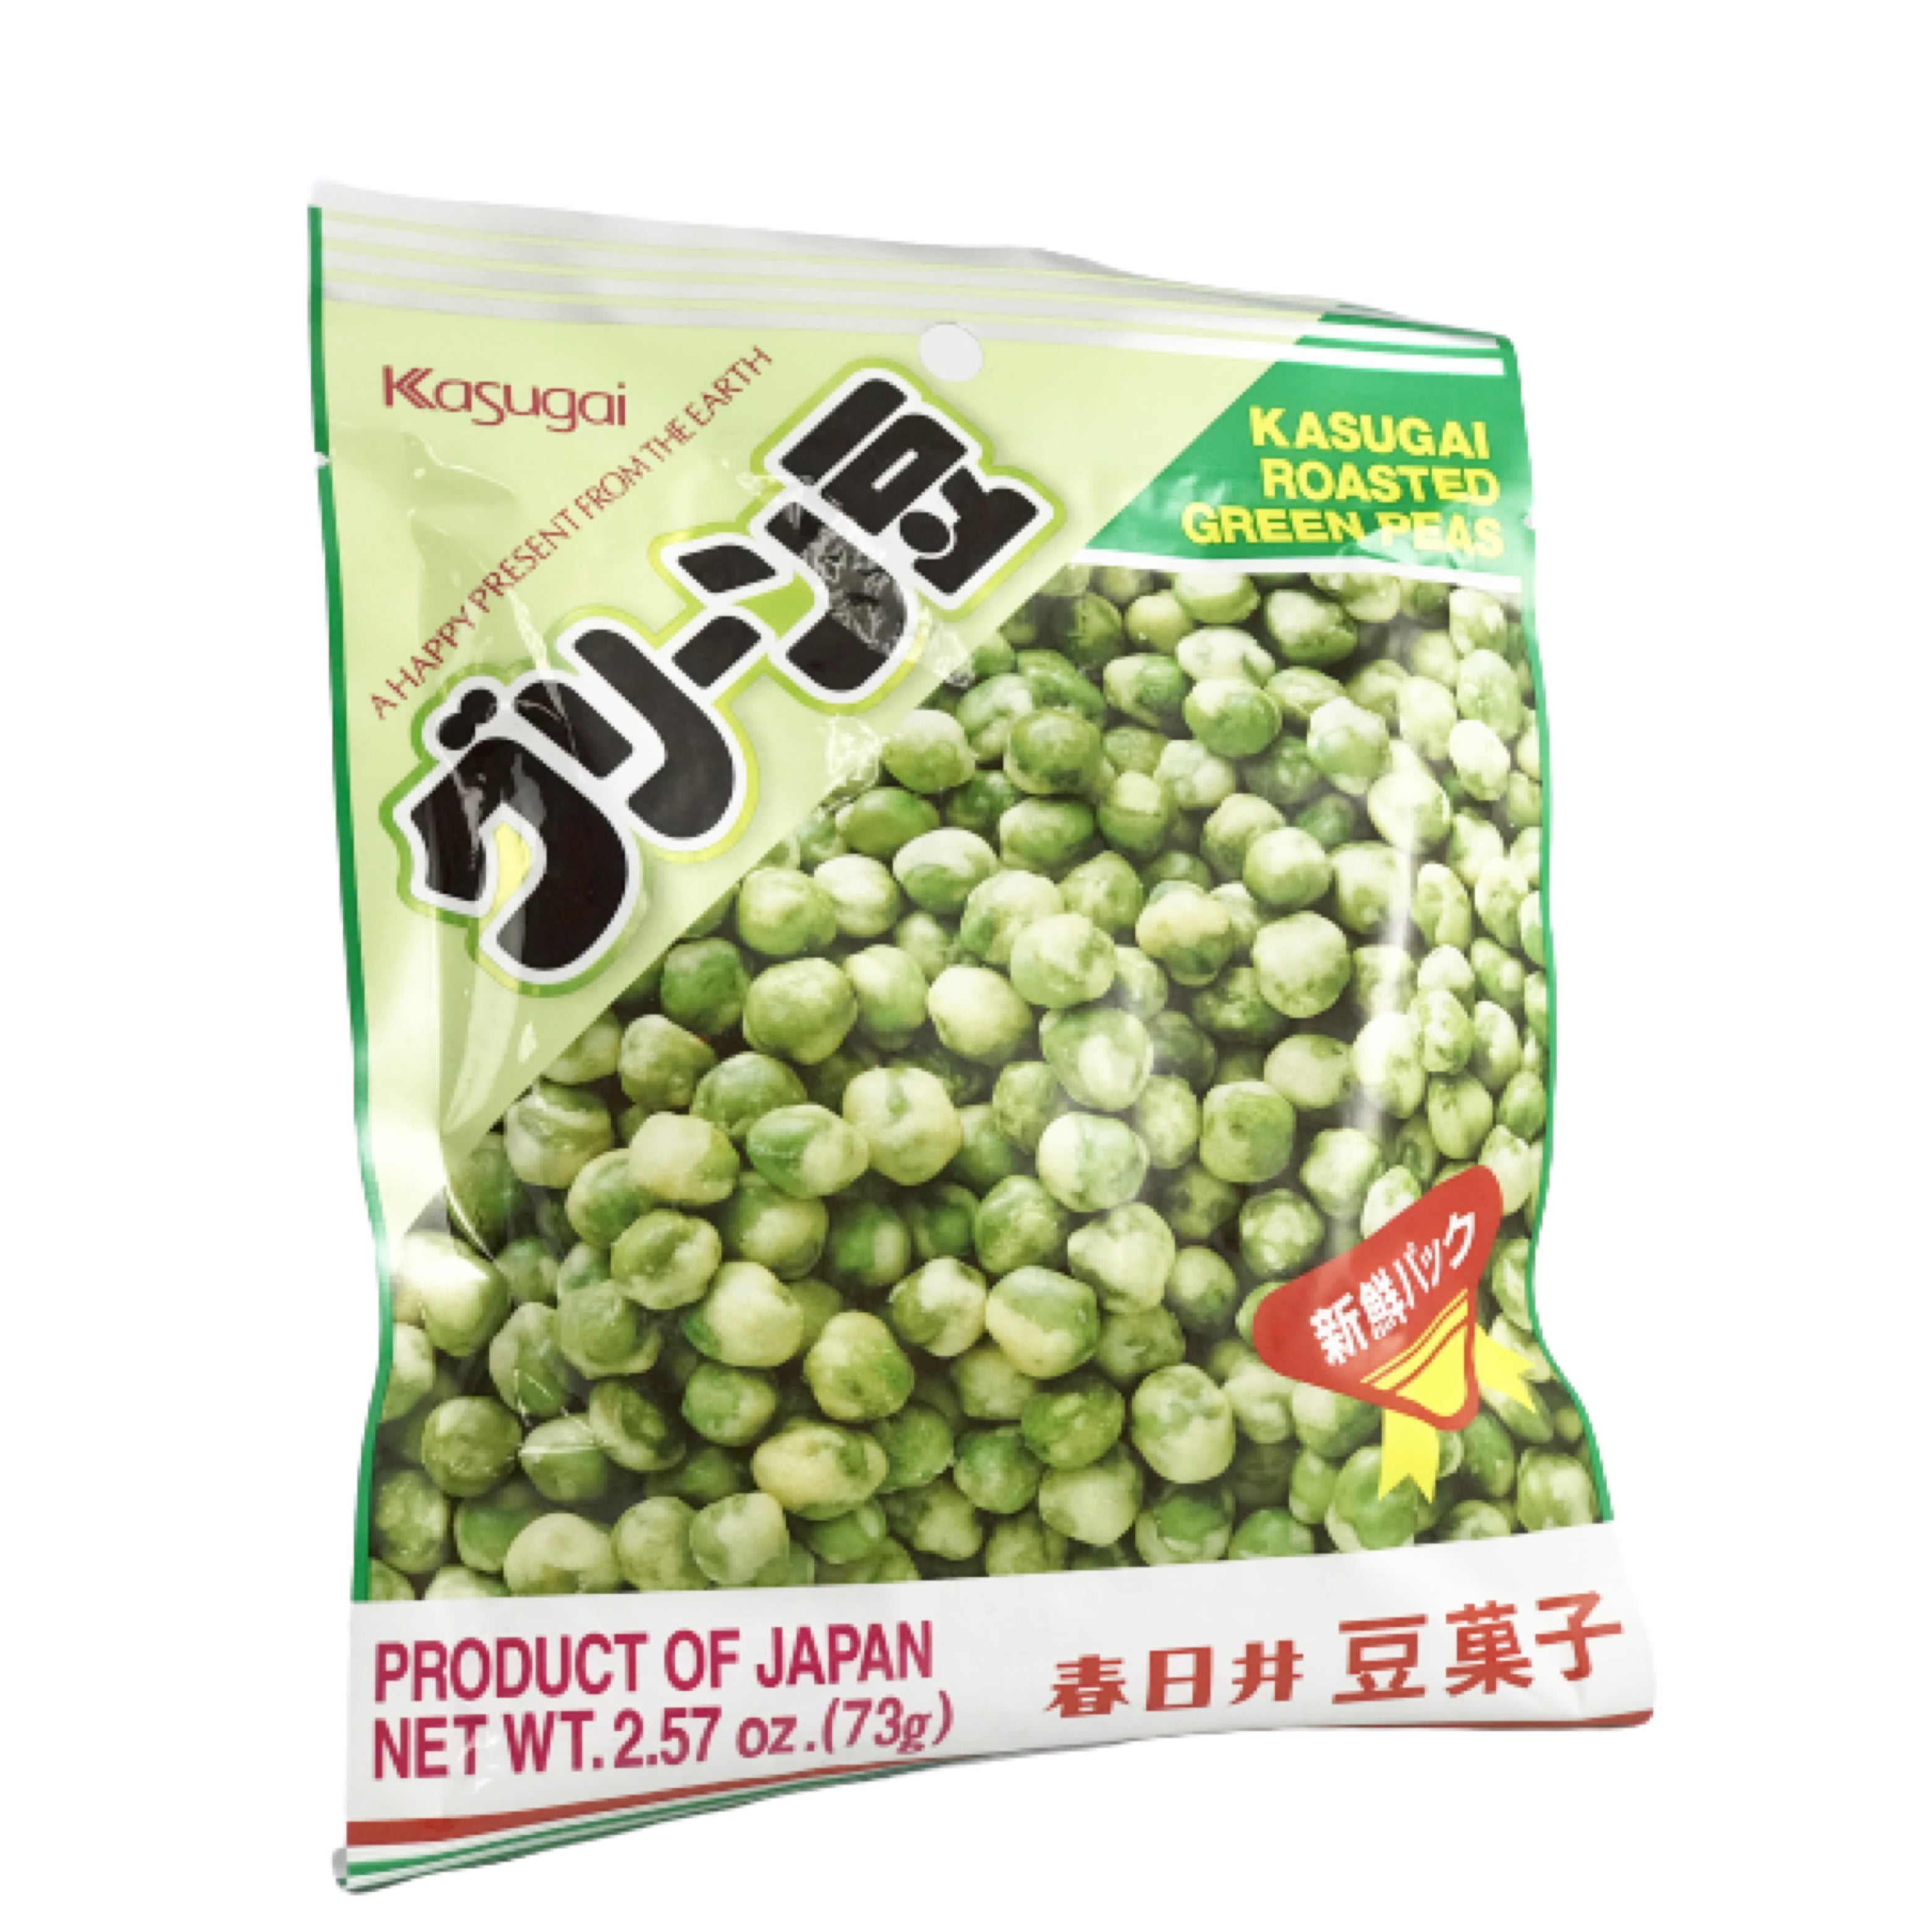 Kasugai Roasted Green Peas 2.57